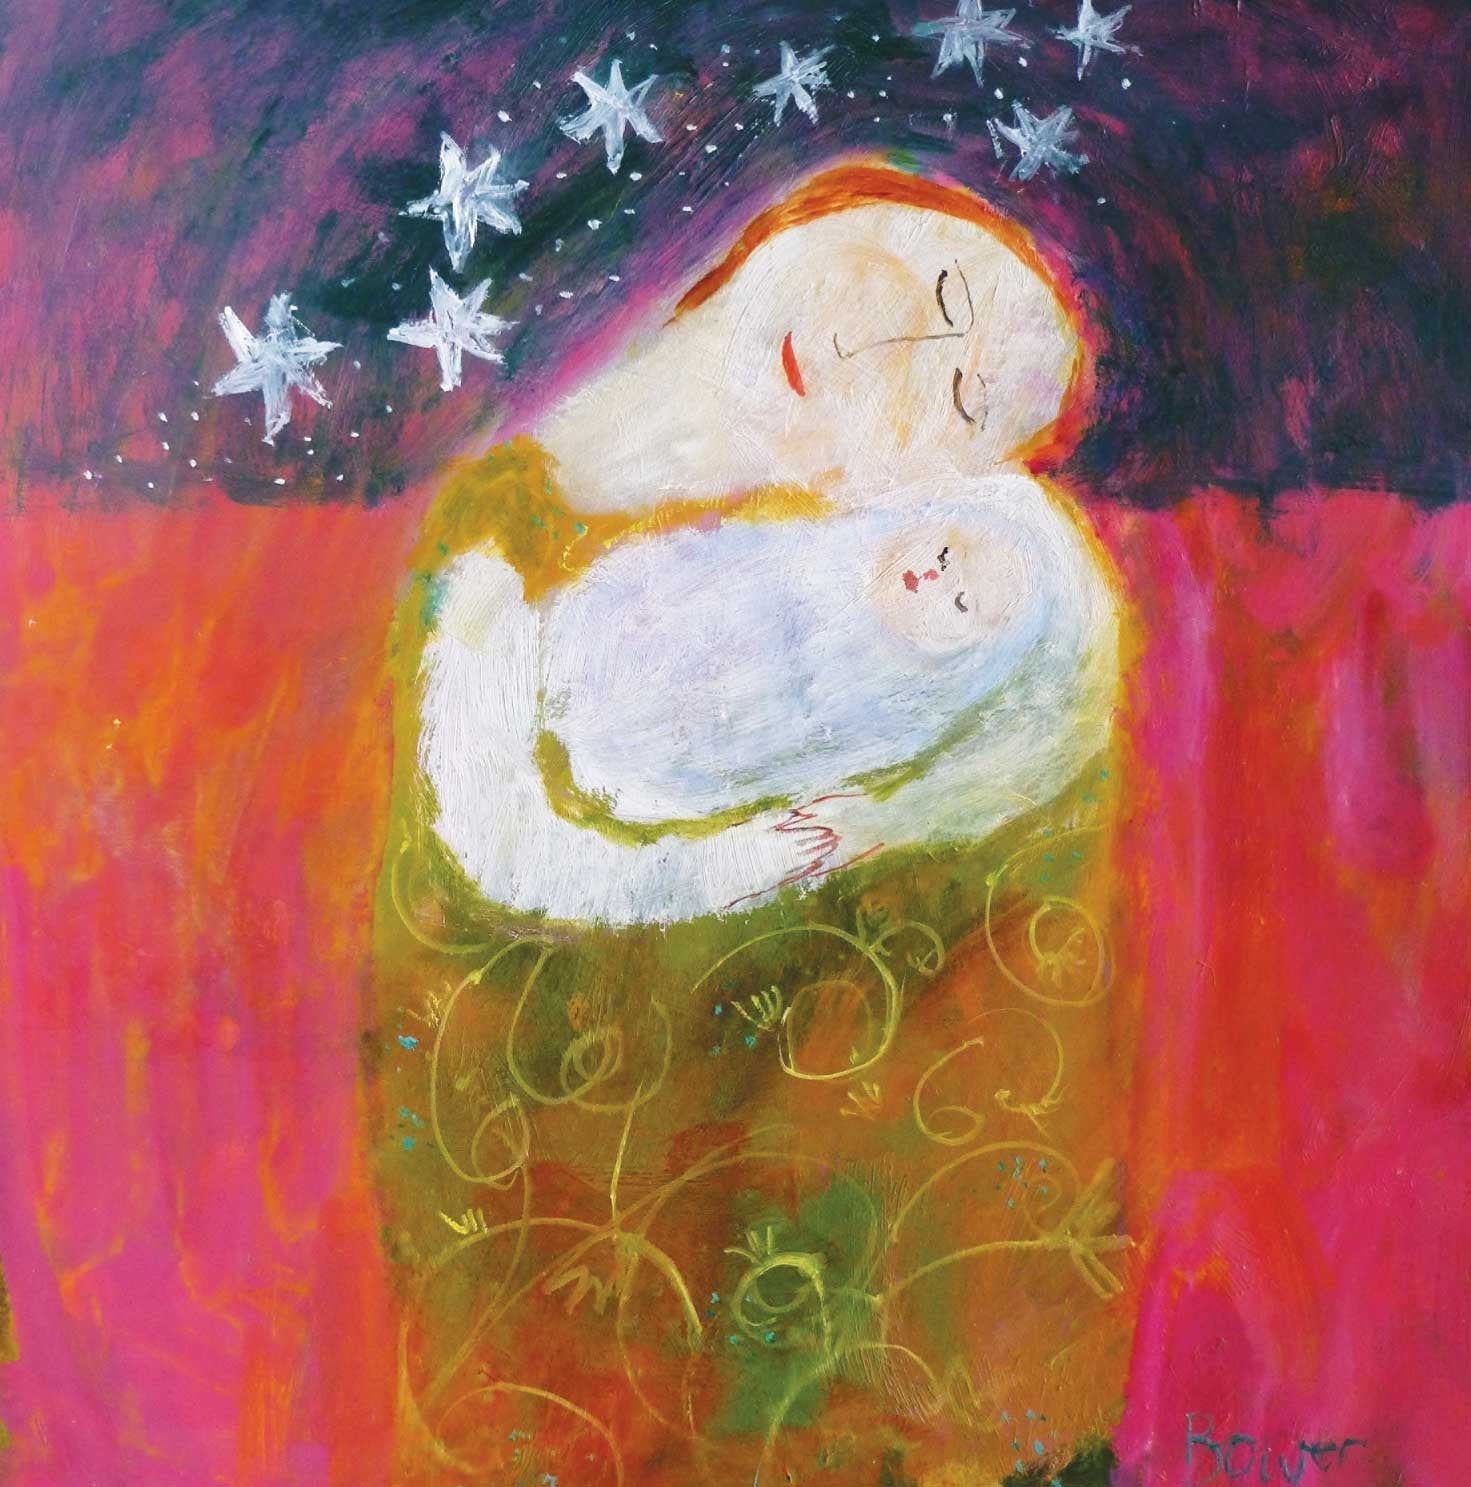 New Baby by Susan Bower, Fine Art Greeting Card, Christmas Pack, Oil on Board, Mother holding baby and stars in night sky